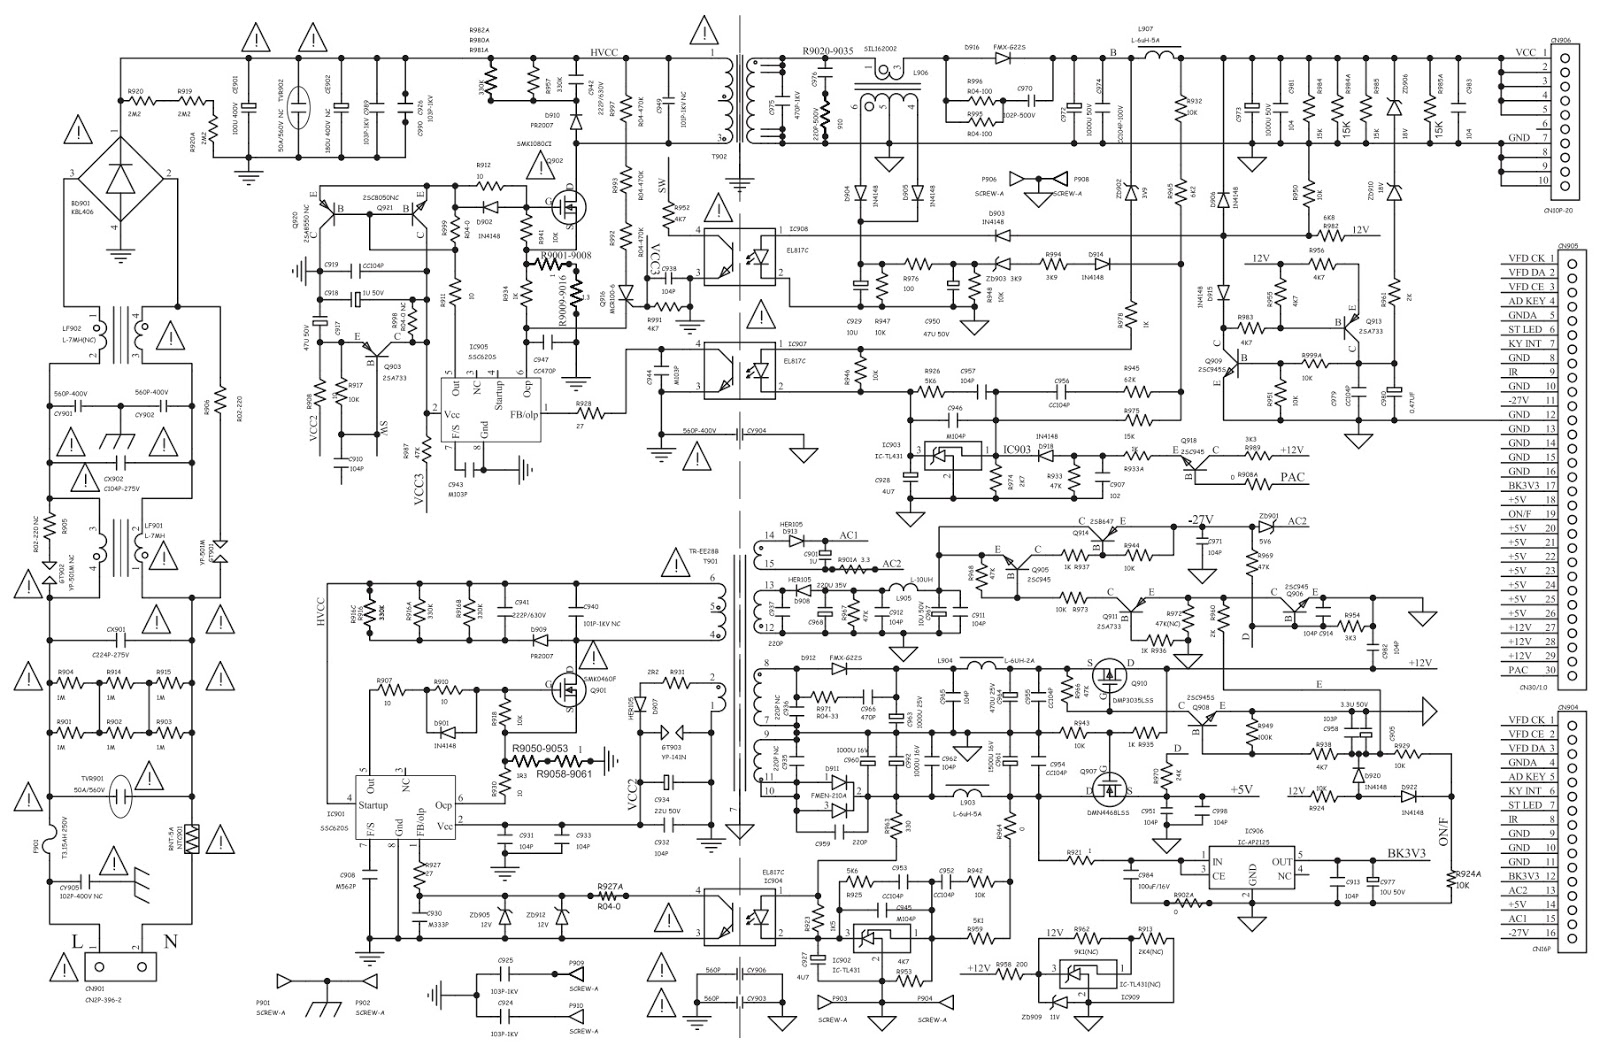 Electro Help  Philips Hts3551 Bd Home Theater System  U2013 Smps Circuit Diagram  U2013 Adjustments